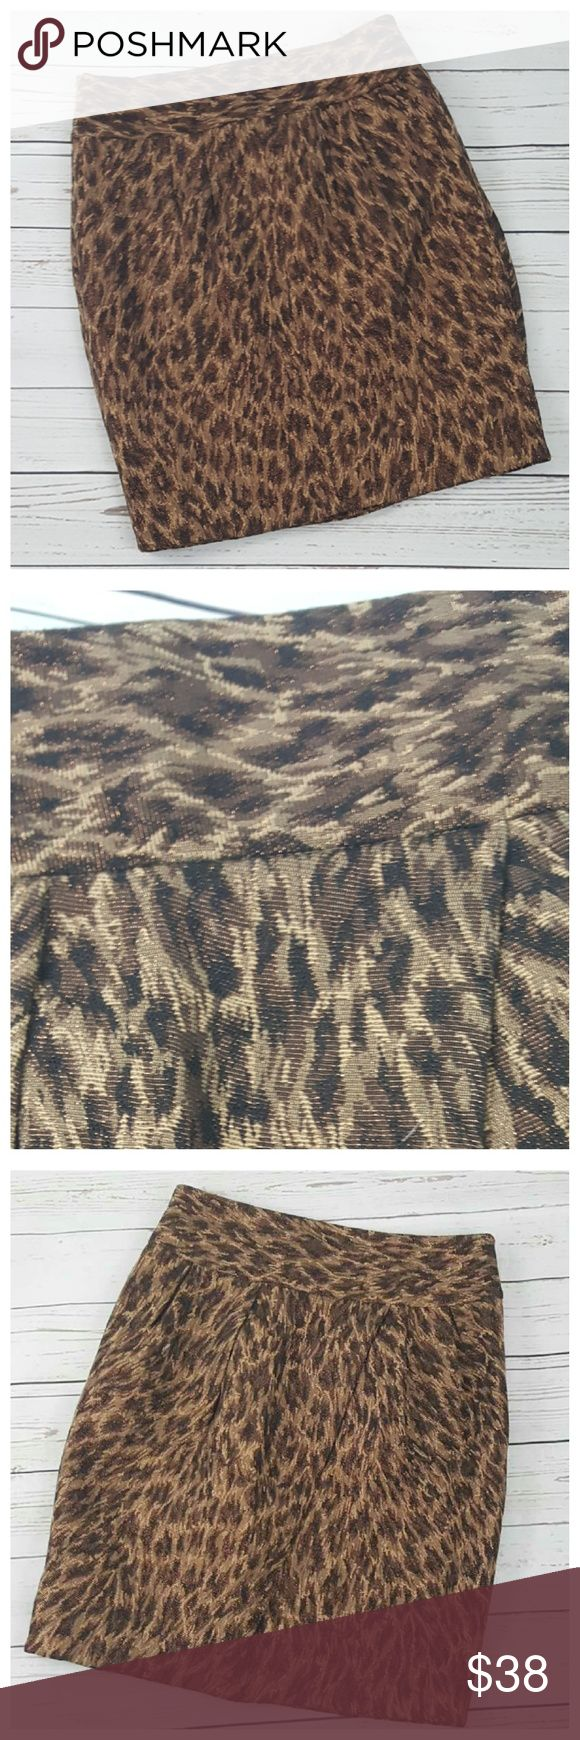 "Adrienne Vittadini Metallic Animal Print Skirt sz6 Adrienne Vittadini animal print metallic finish skirt in shades of brown, tan & copper colored metallic threads. Size 6. Fully lined. Hidden 8"" side zipper with hook & eye at top. Wide 3.5"" waistband. Four small front pleats and faux wrap effect in the front. 49% polyester, 48% cotton, 2% nylon, and 1% metallic threads. New with tags.  Approximate measurements laying flat: 15""W (30"" around), 20""H (40"" around), 21""L. Adrienne Vittadini Skirts…"